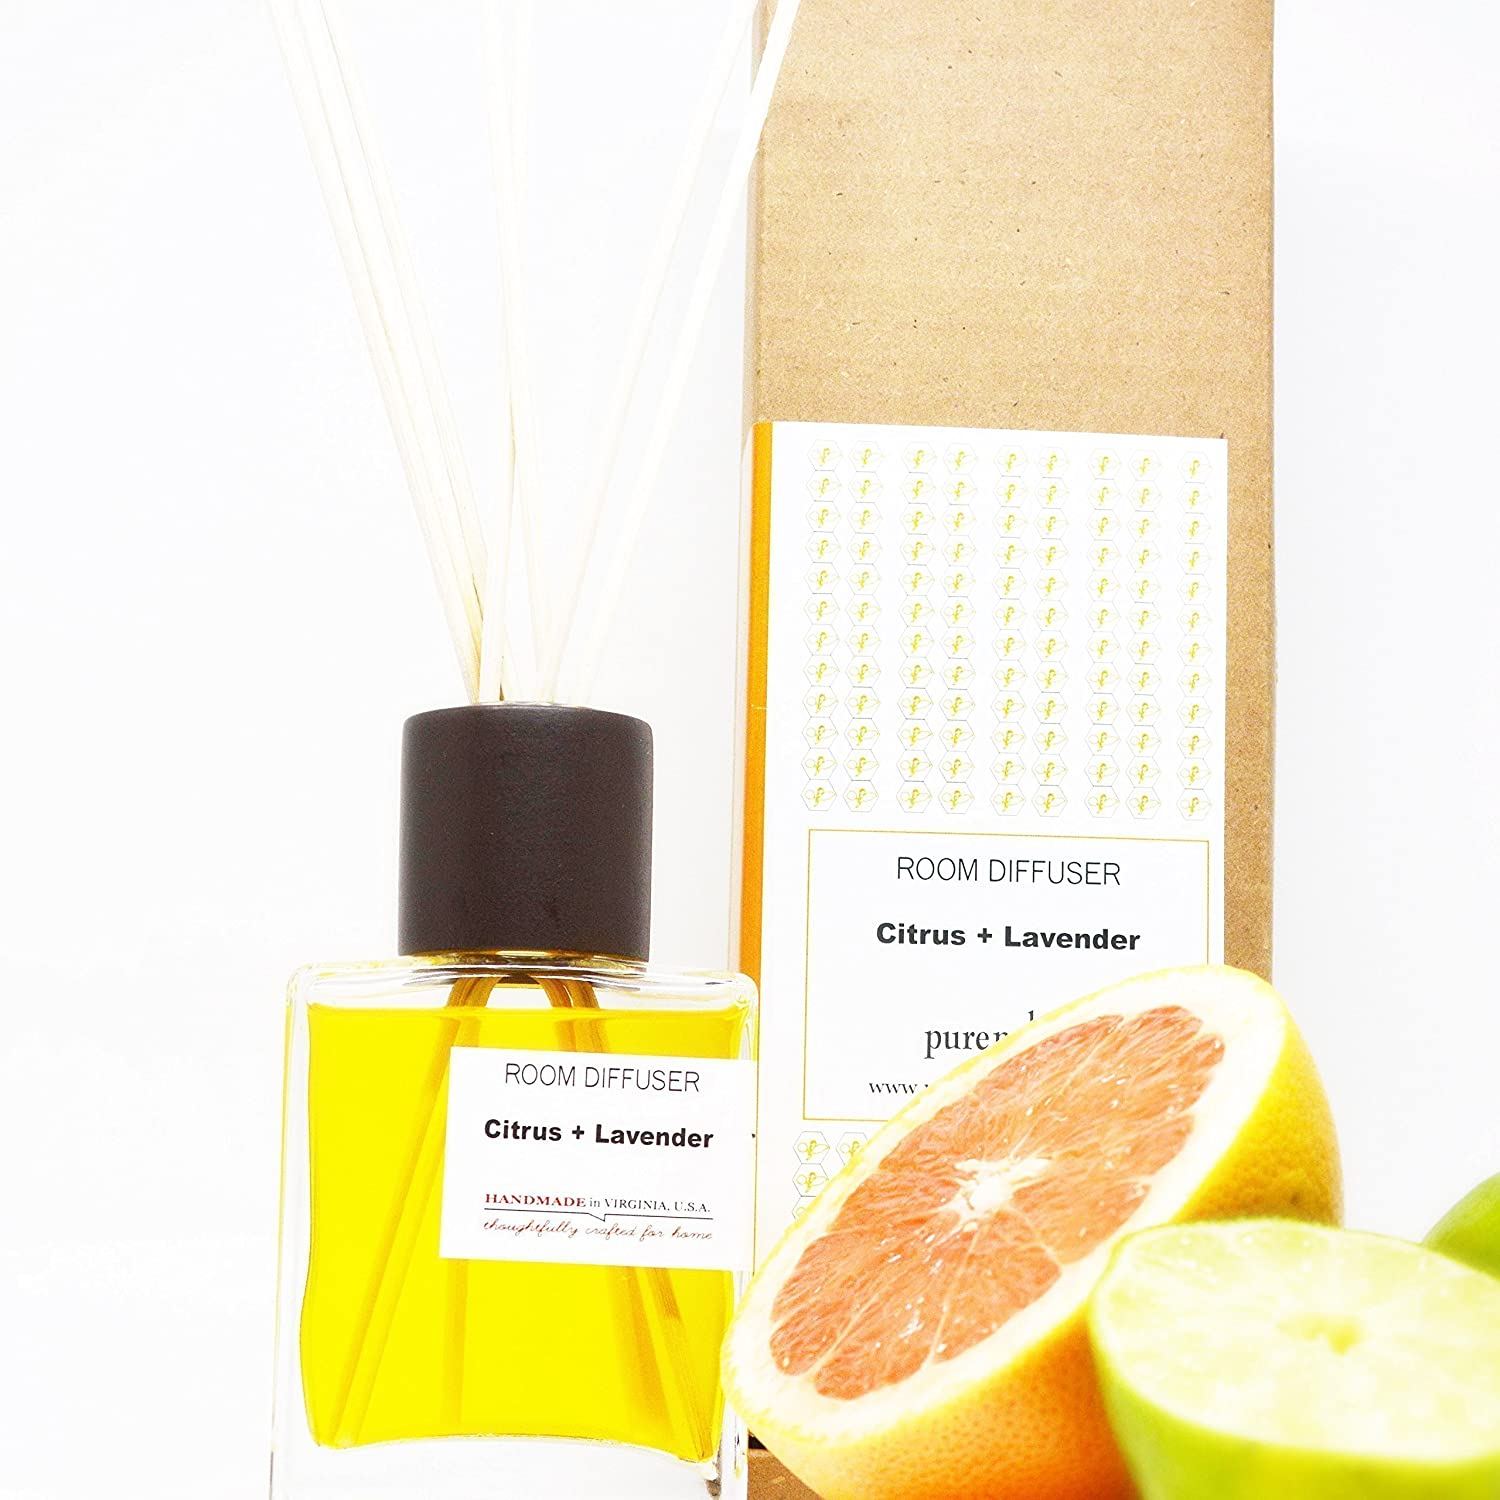 Citrus Lavender Spa Fragrance Room Diffuser Set with Natural Reeds and Box Handmade in Virginia U.S.A